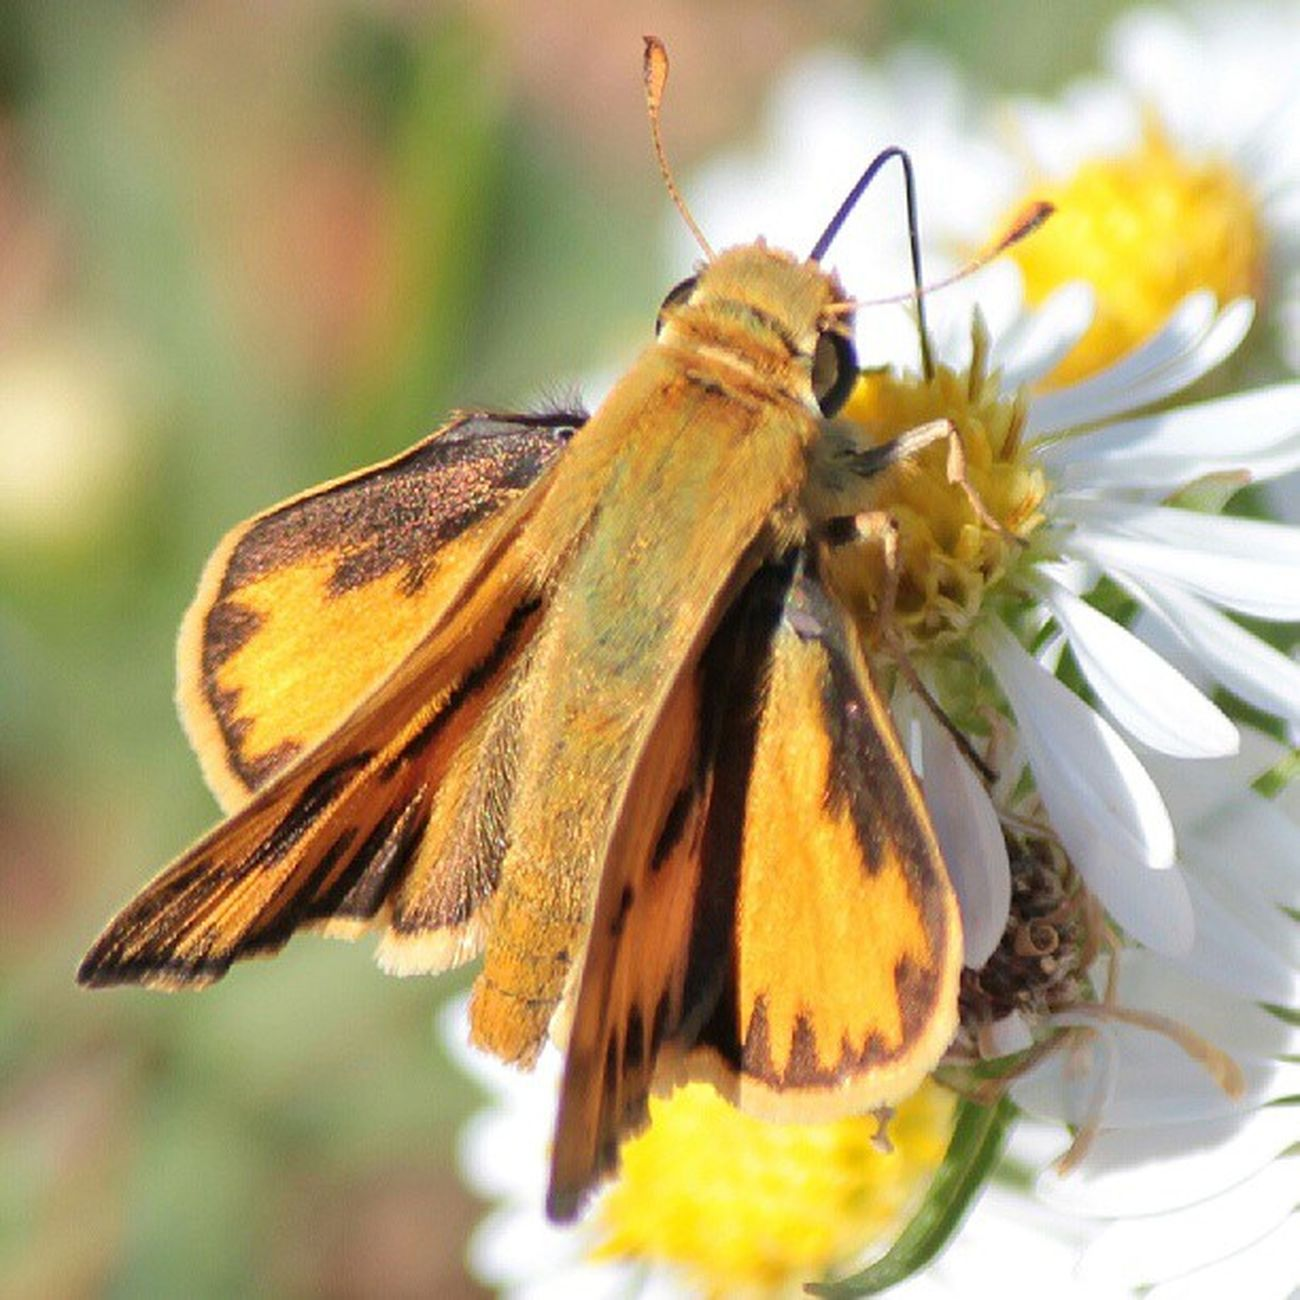 Skipper Insect_perfection Instanaturefriends Nature_perfection Underdogs_nature md_macro macro wildlife_perfection